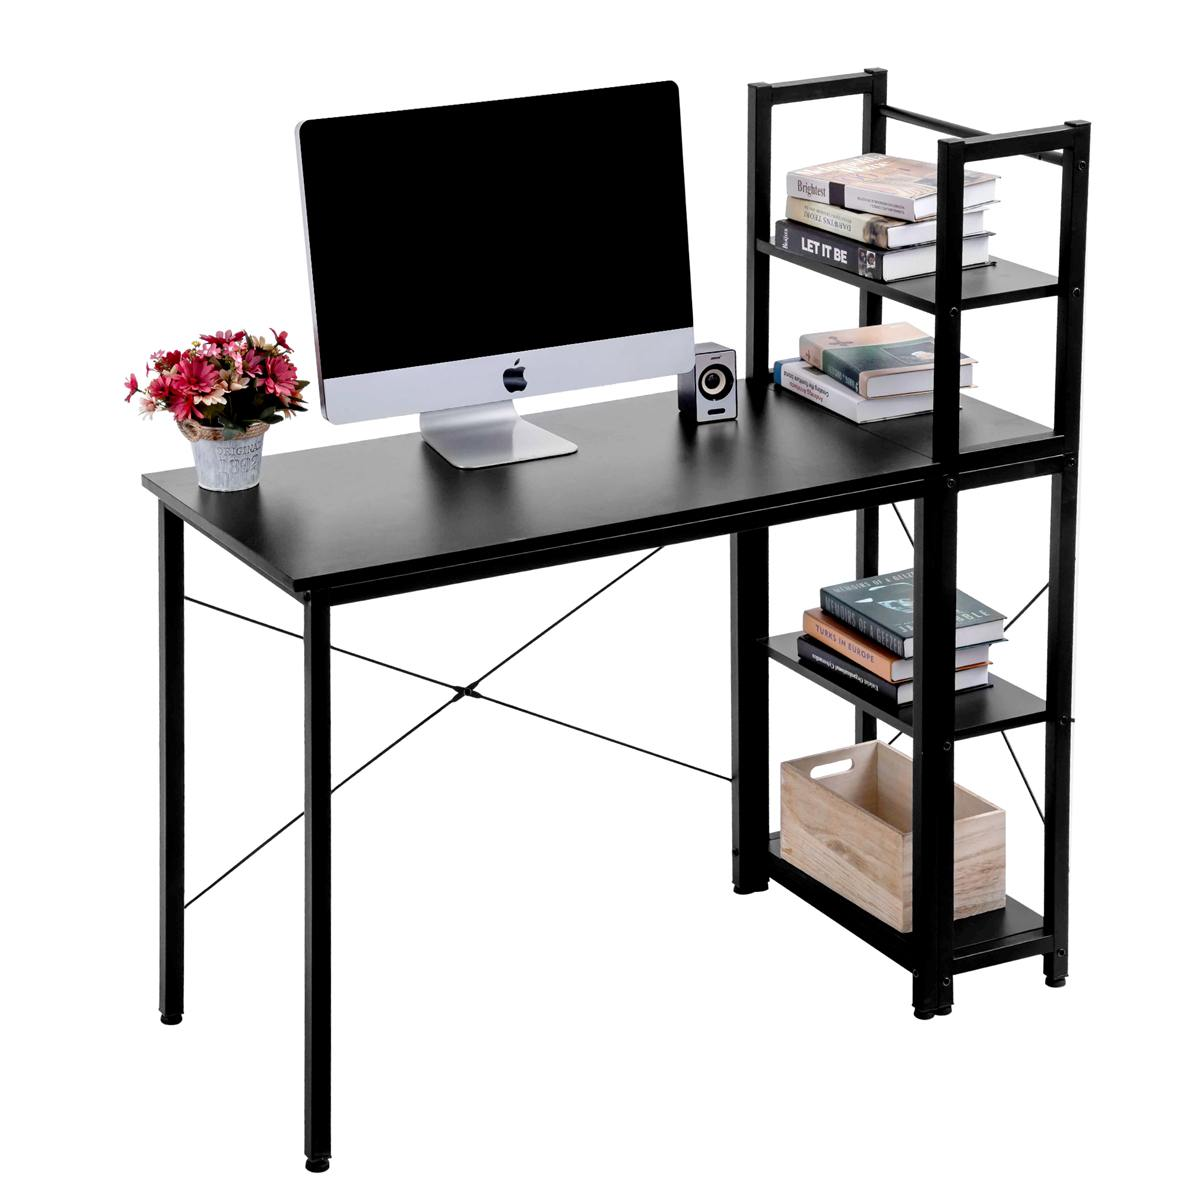 Modern Style Office Desk Computer Laptop Desk With 4 Tier Wood Shelves Study Writing Table PC Laptop Table For Home Office